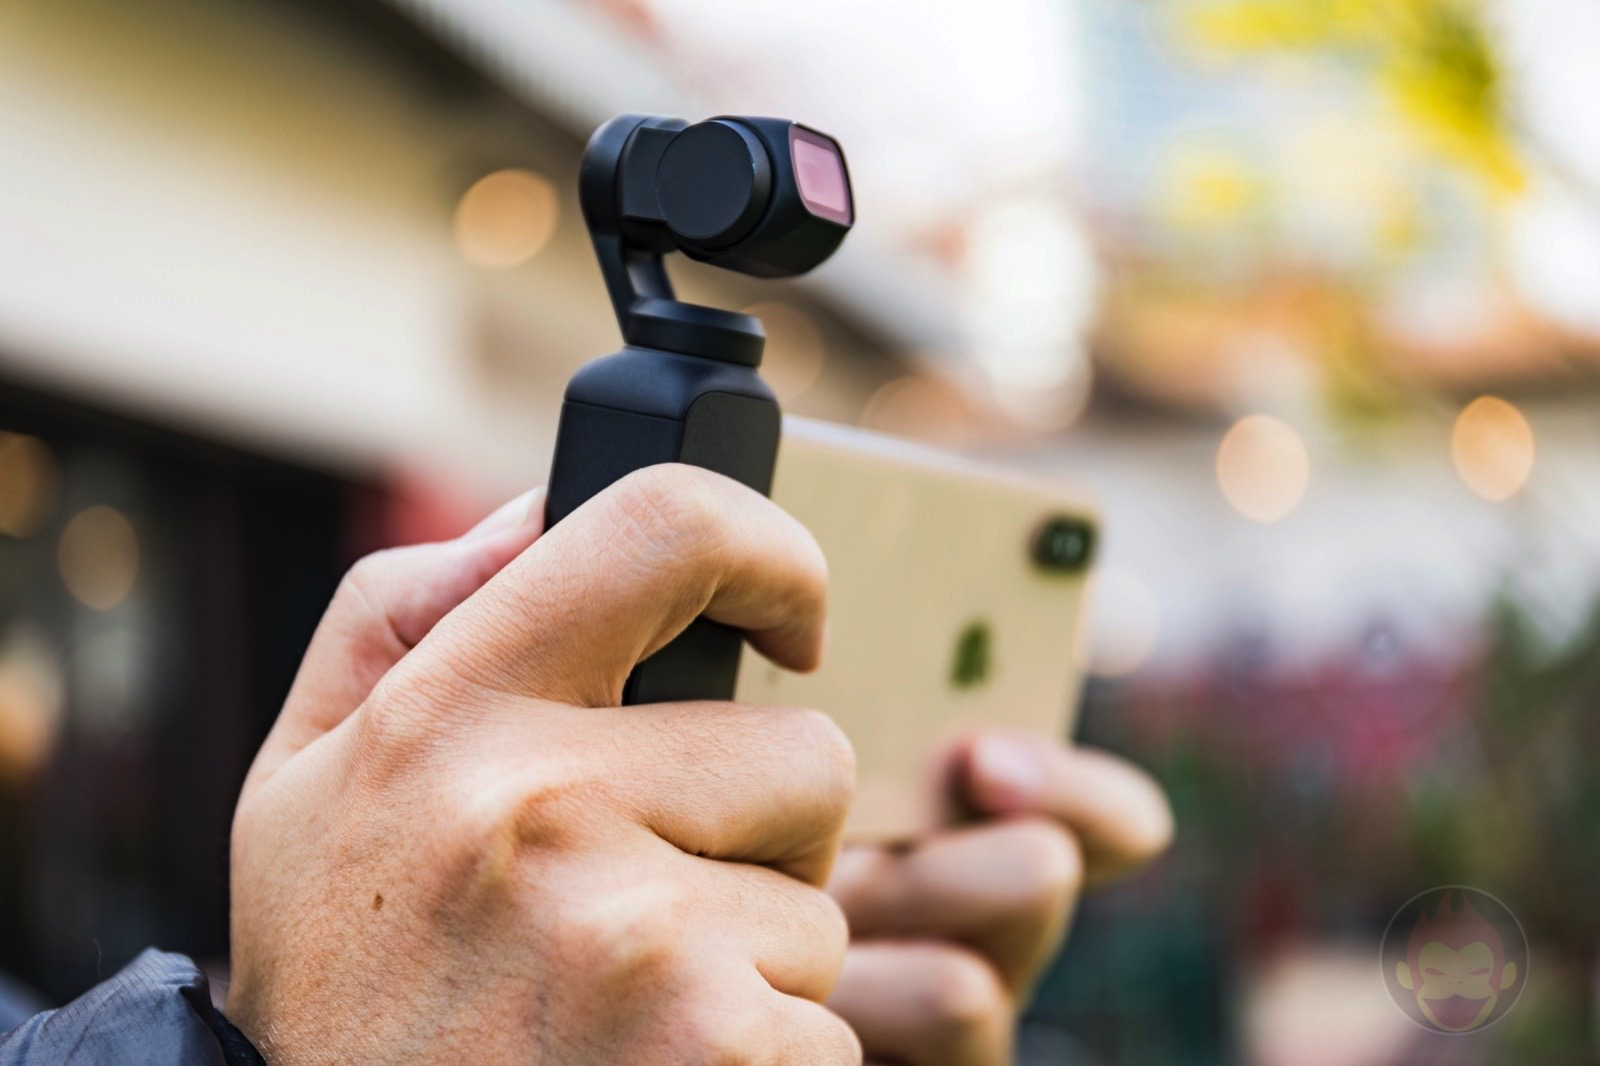 DJI Osmo Pocket Hands On 12